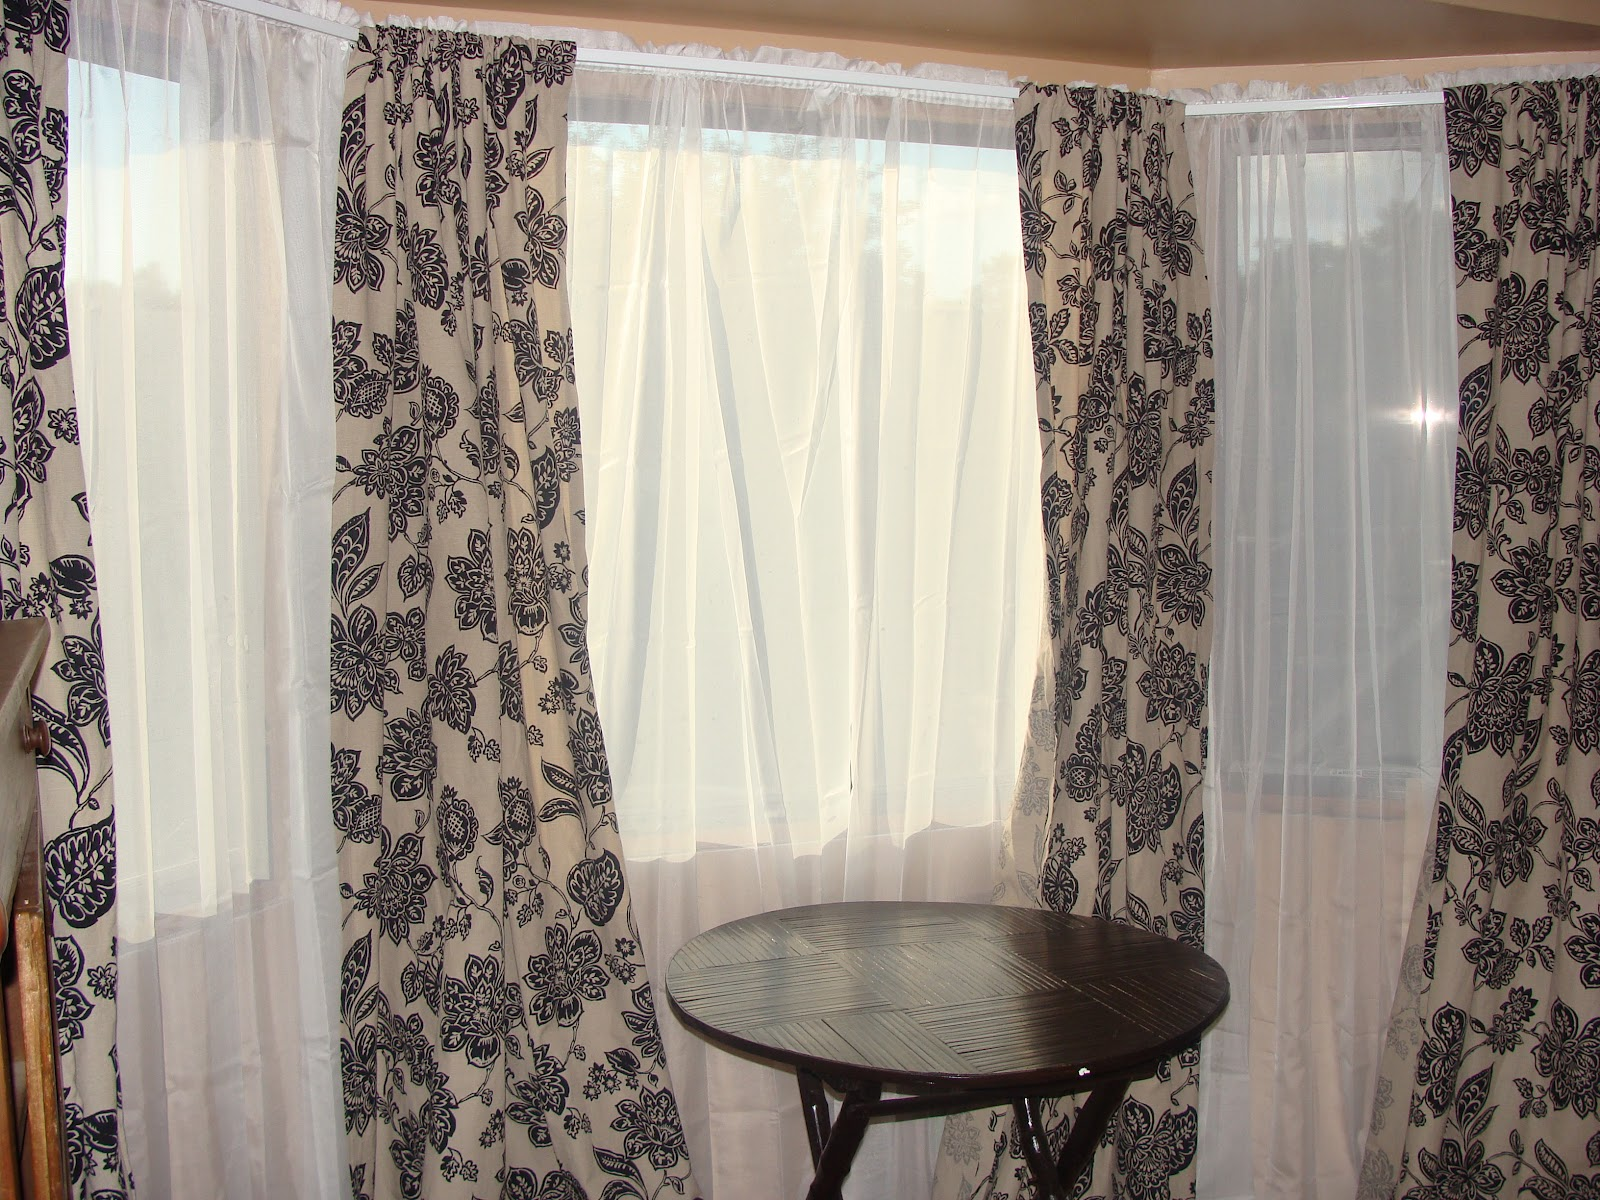 Owen Family Six Bay Window Curtains